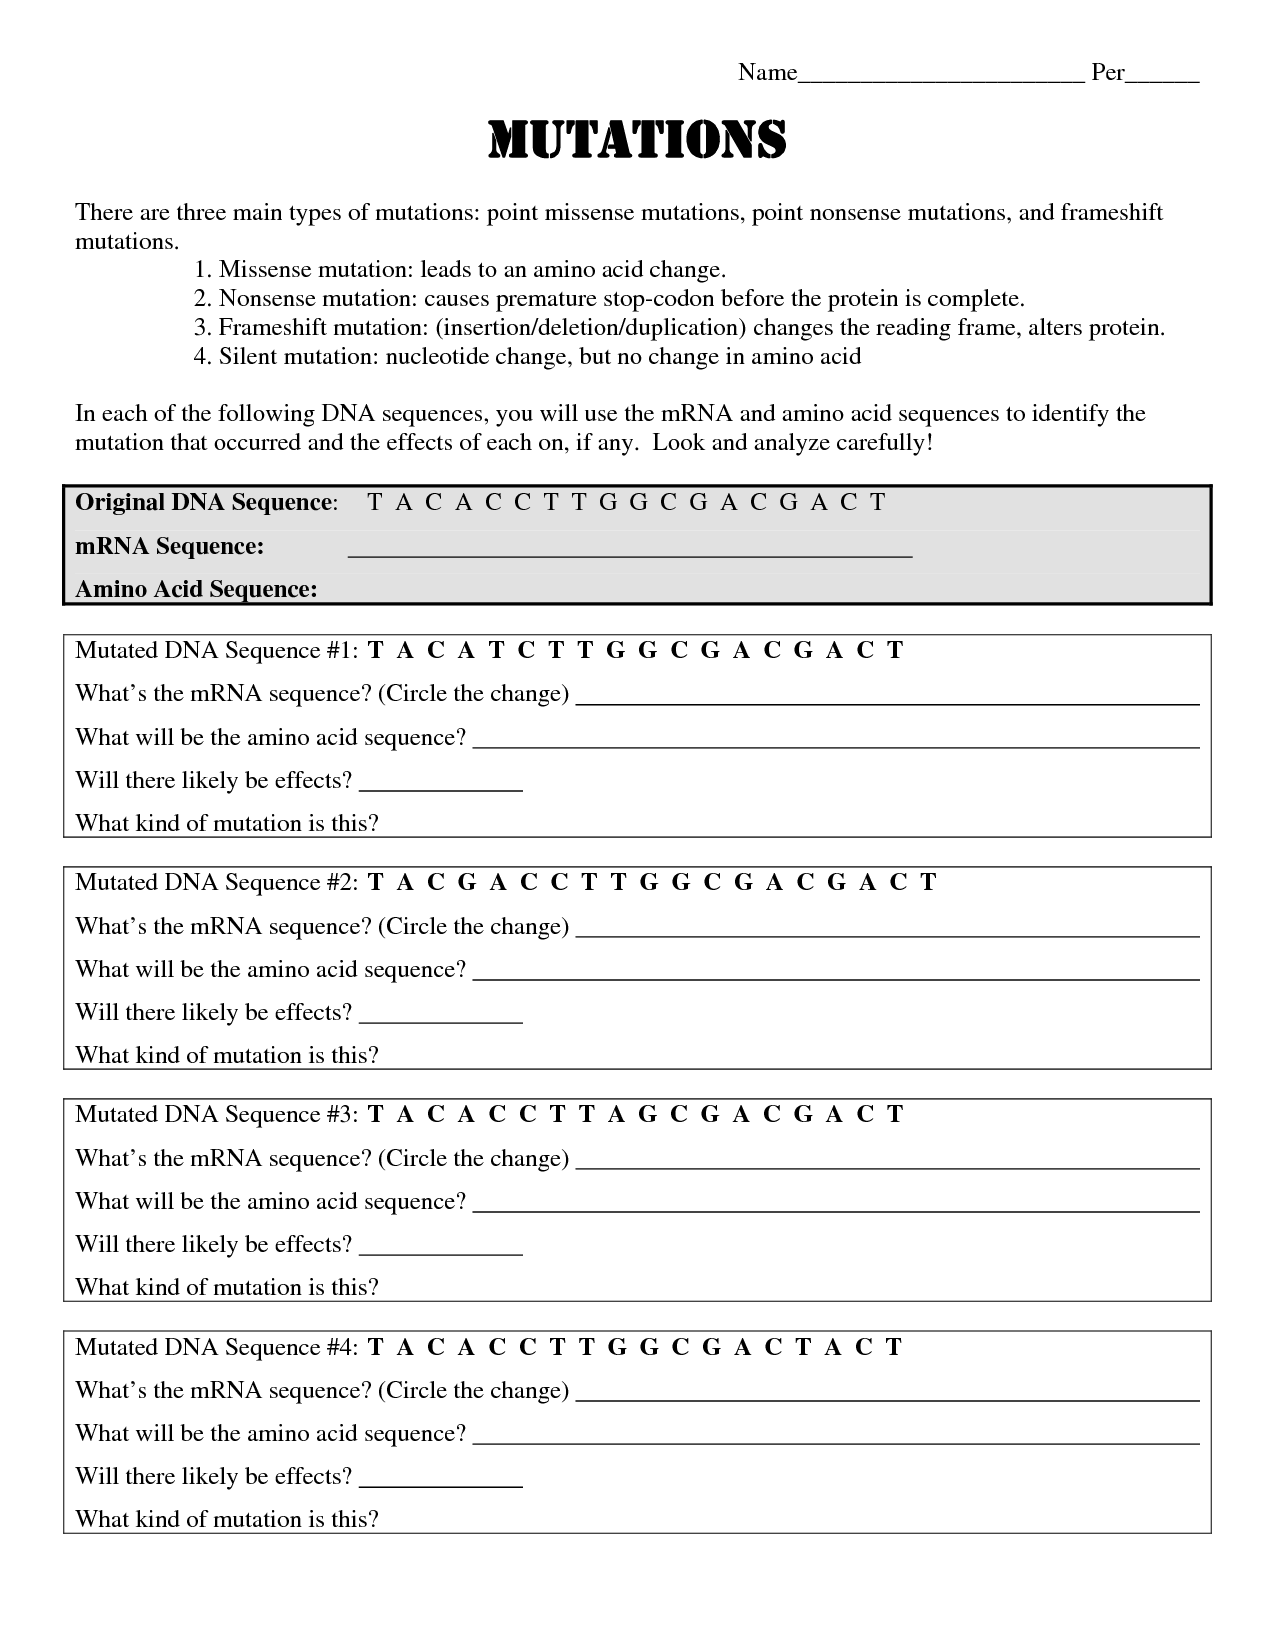 17 Best Images Of Dna Mutations Practice Worksheet Page 2